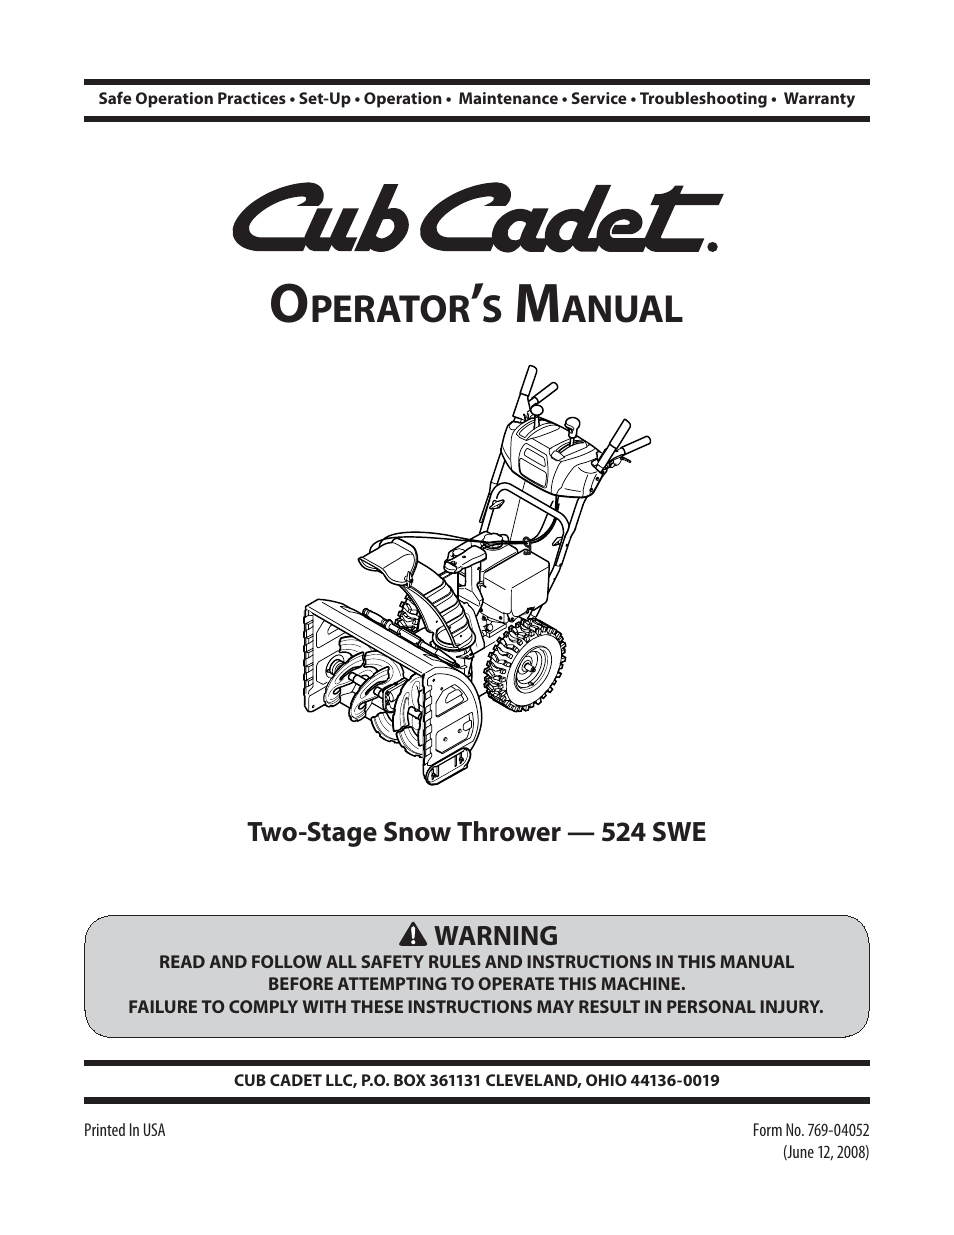 Cub cadet 524 swe snow thrower operator's manual $9. 95 | picclick.